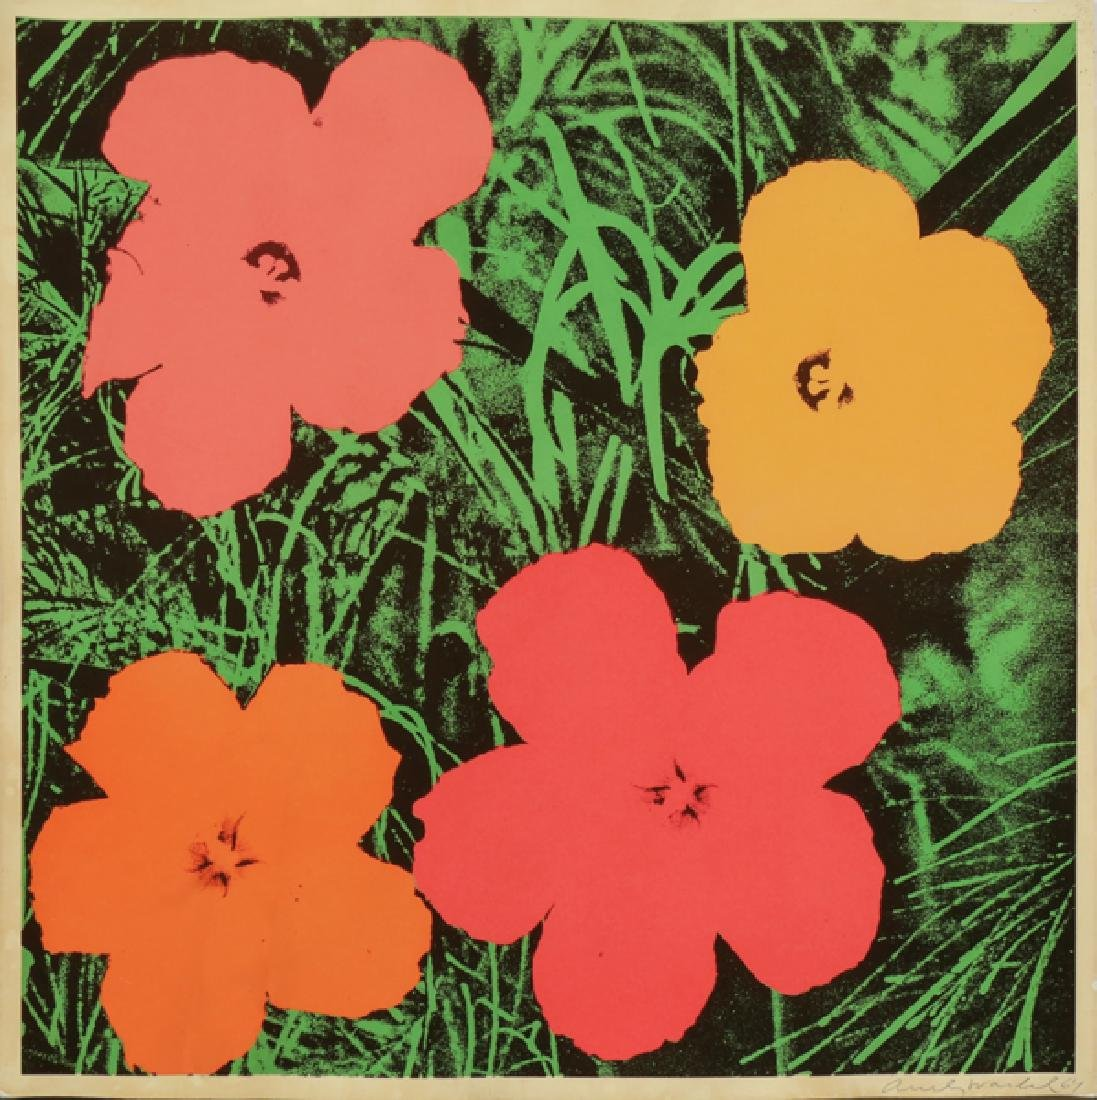 ANDY WARHOL (AFTER) AMERICAN 1928-1987